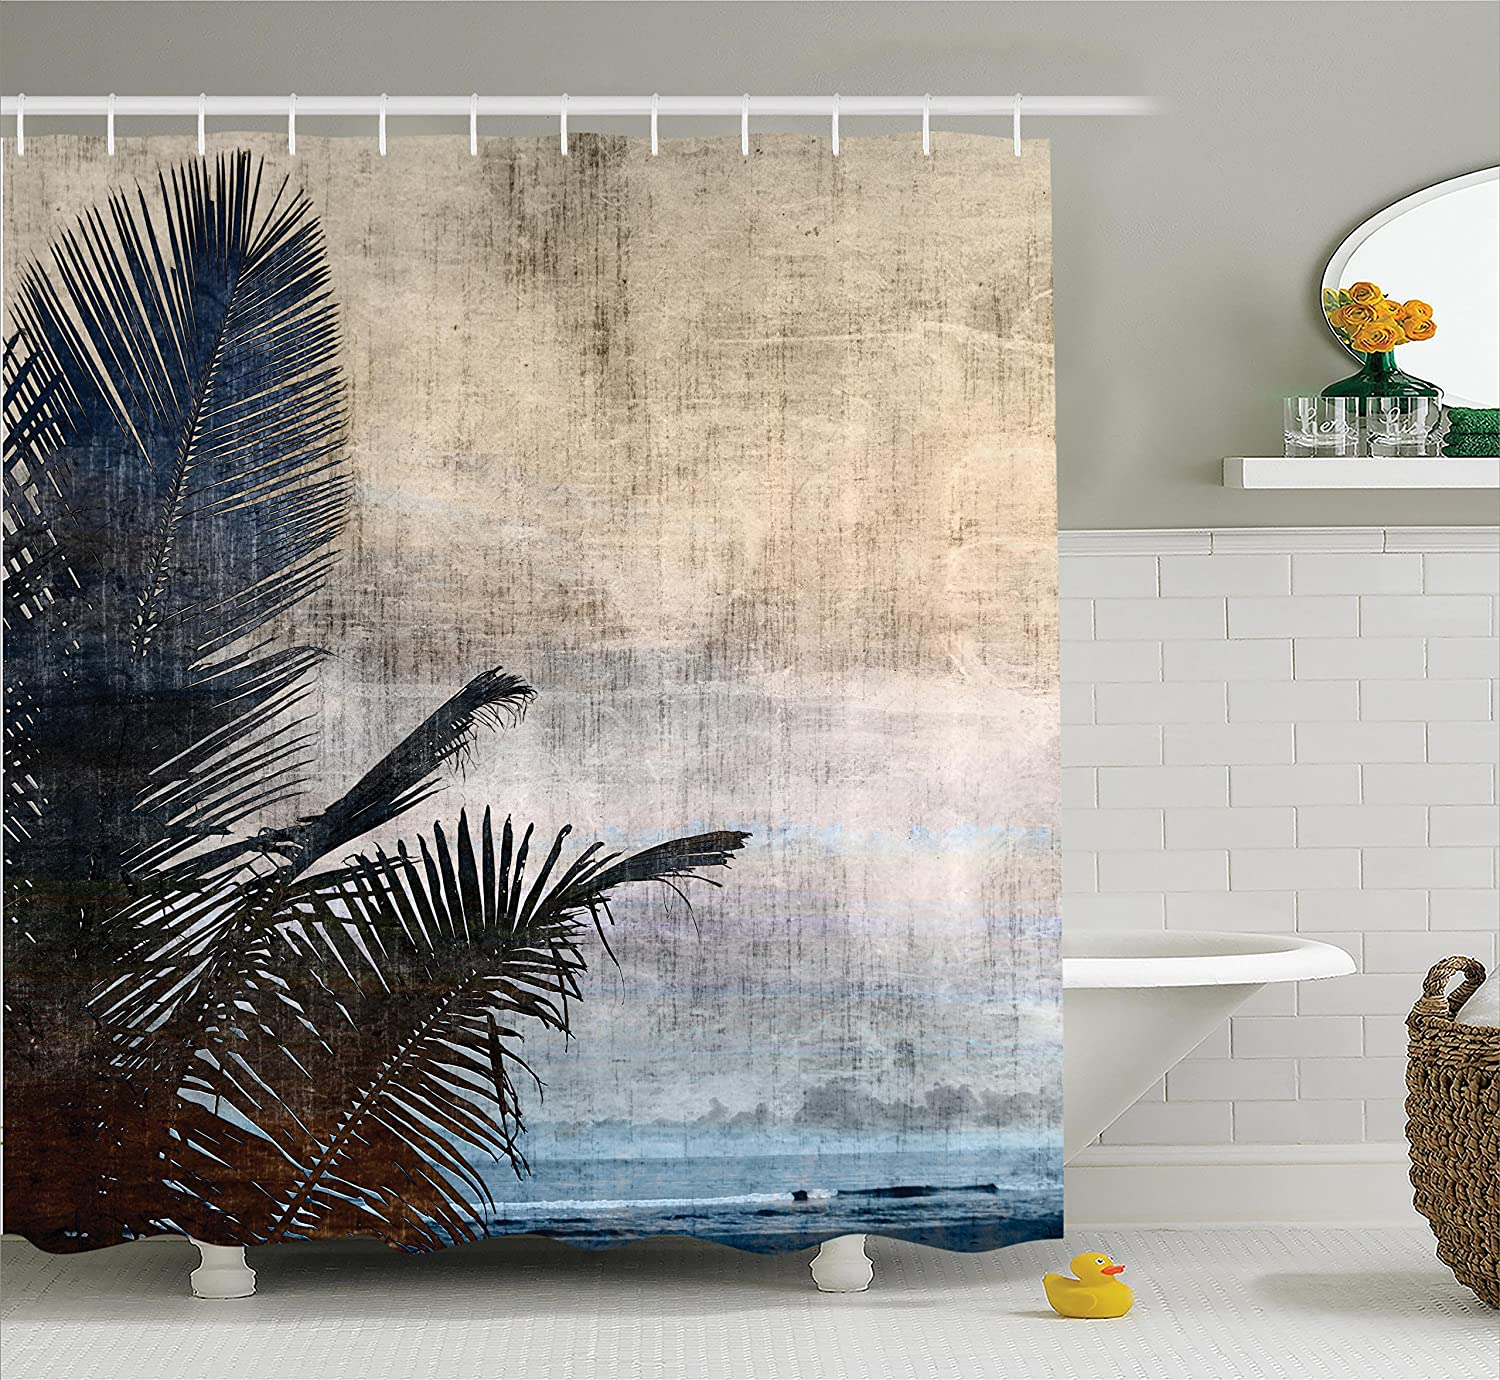 Ambesonne Hawaiian Decorations Shower Curtain Set, Palm Tree Leaves On Grunge Background with Sea Vintage Waterscape Illustration, Bathroom Accessories, 69W X 70L inches, Beige Navy